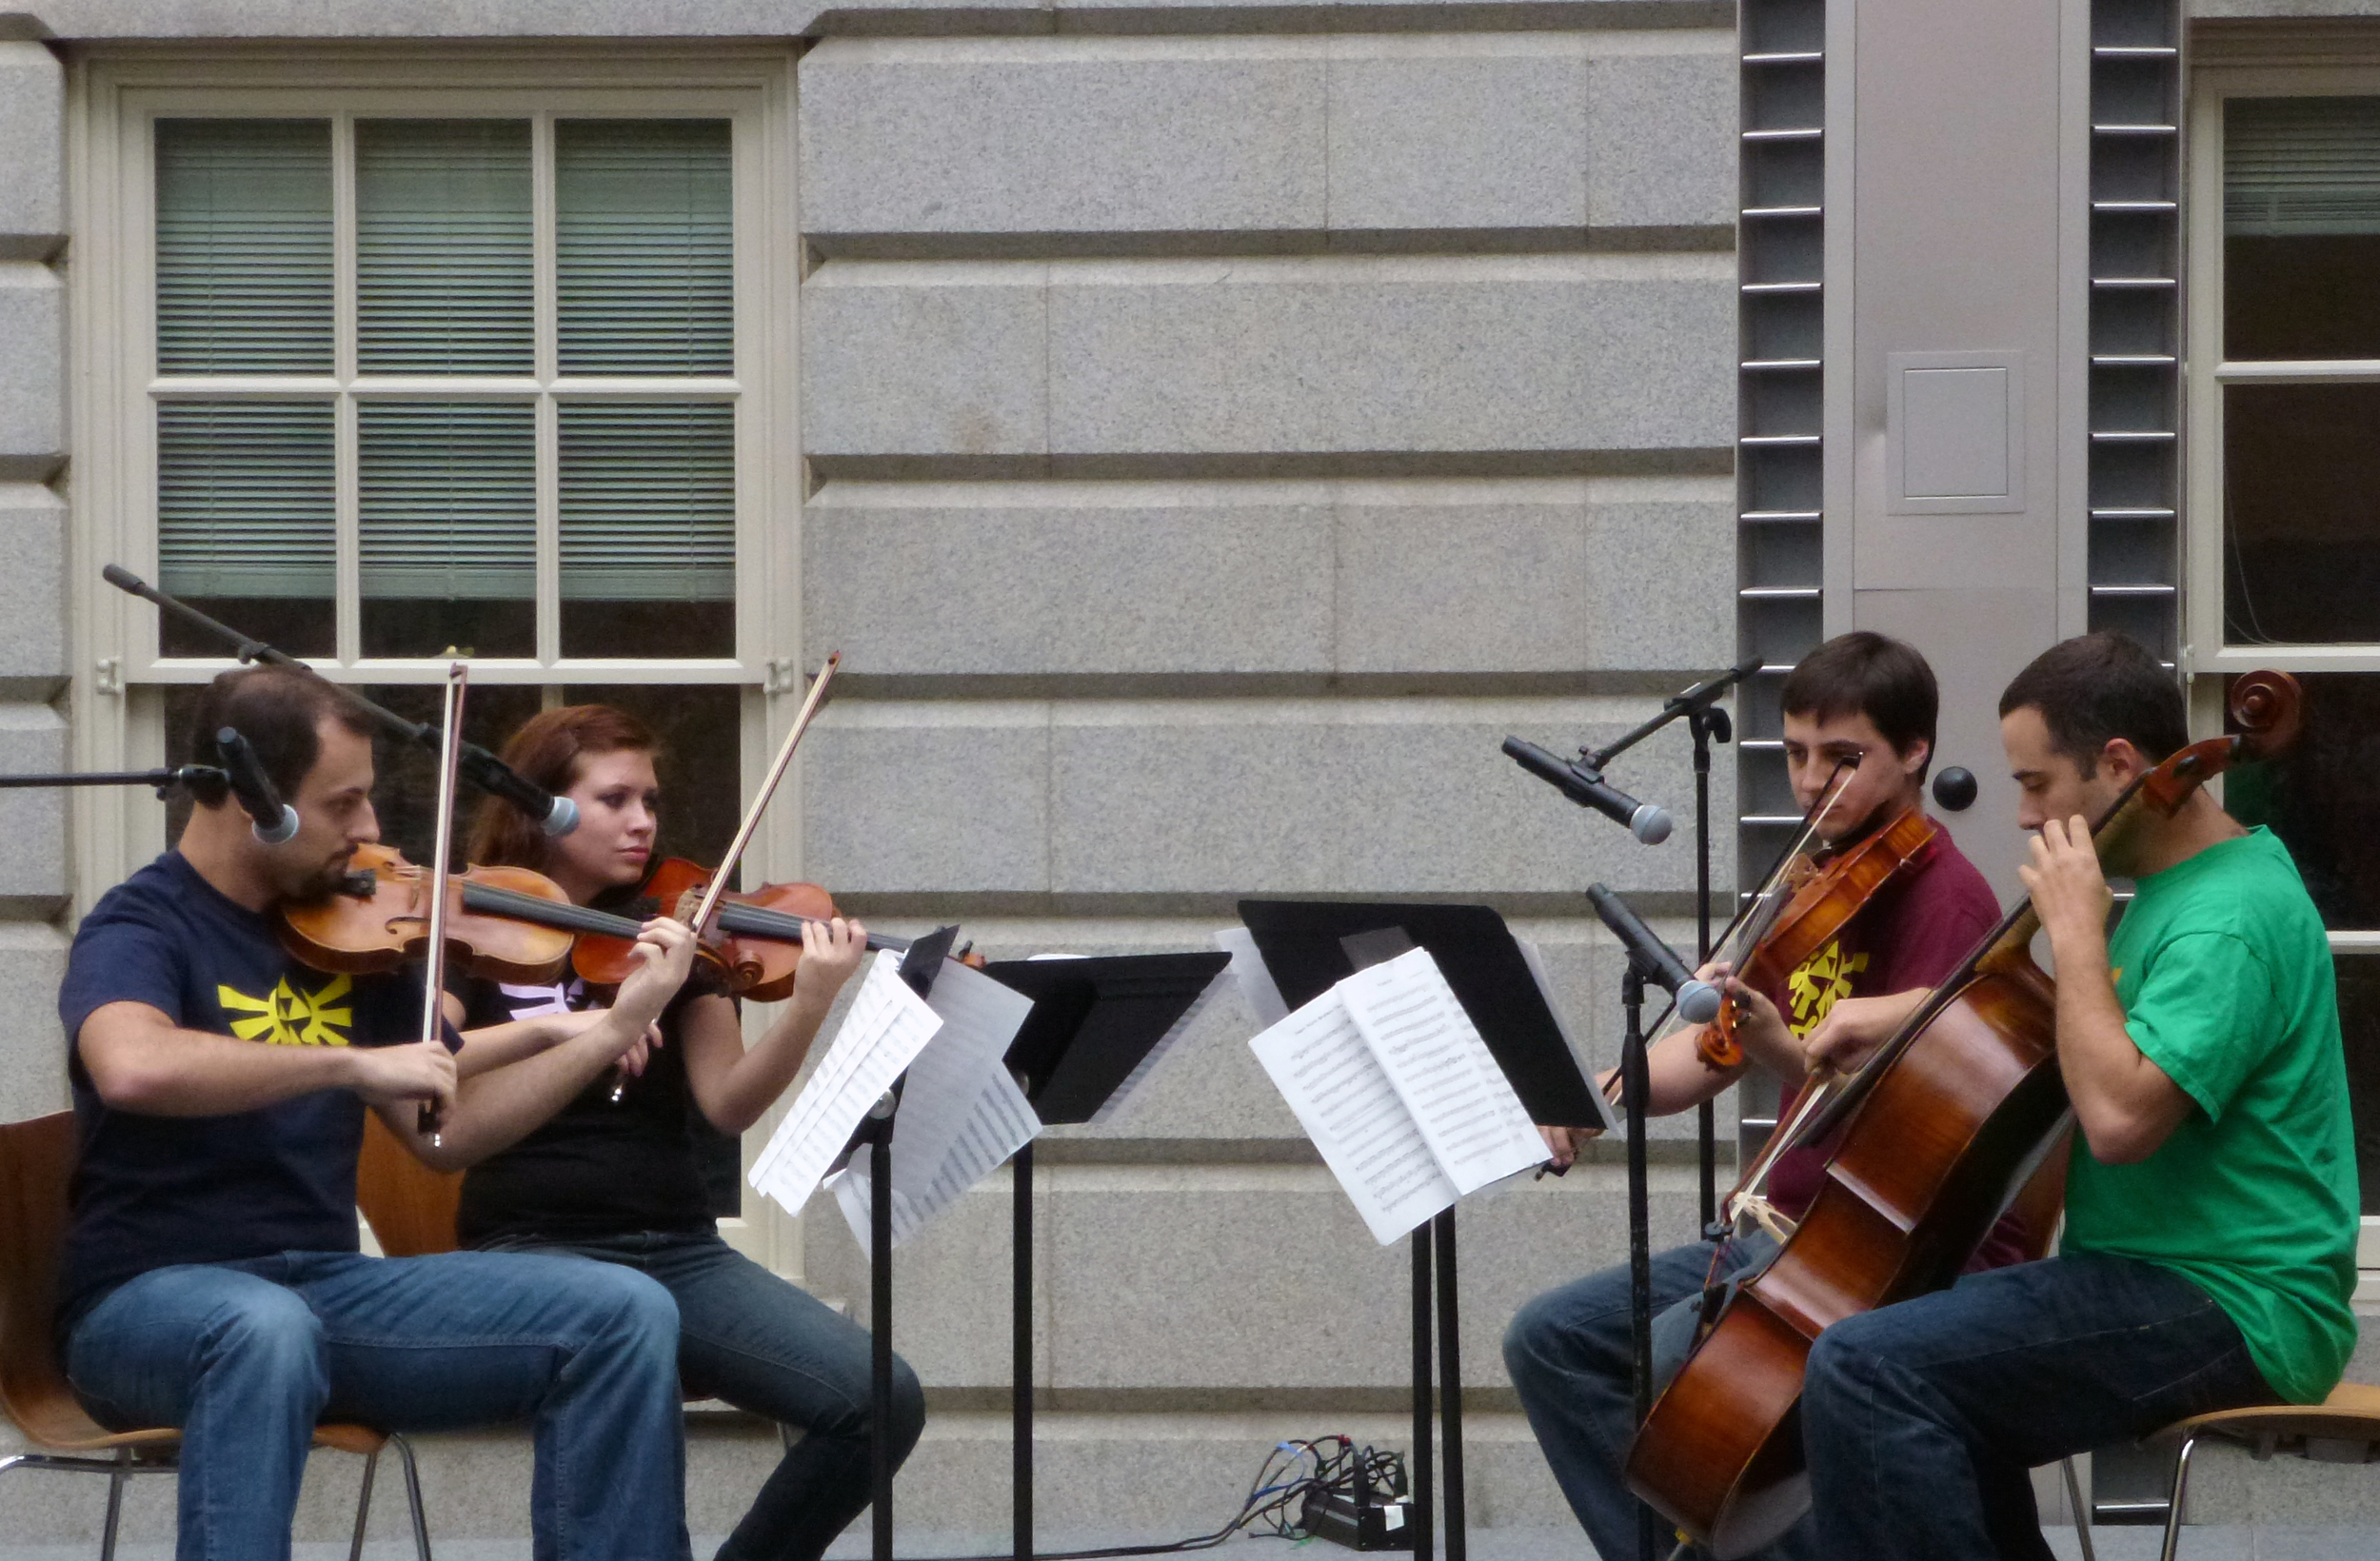 The Triforce Quartet plays in the courtyard during the exhibit's opening weekend. They performed theme songs to a variety of games throughout the day.